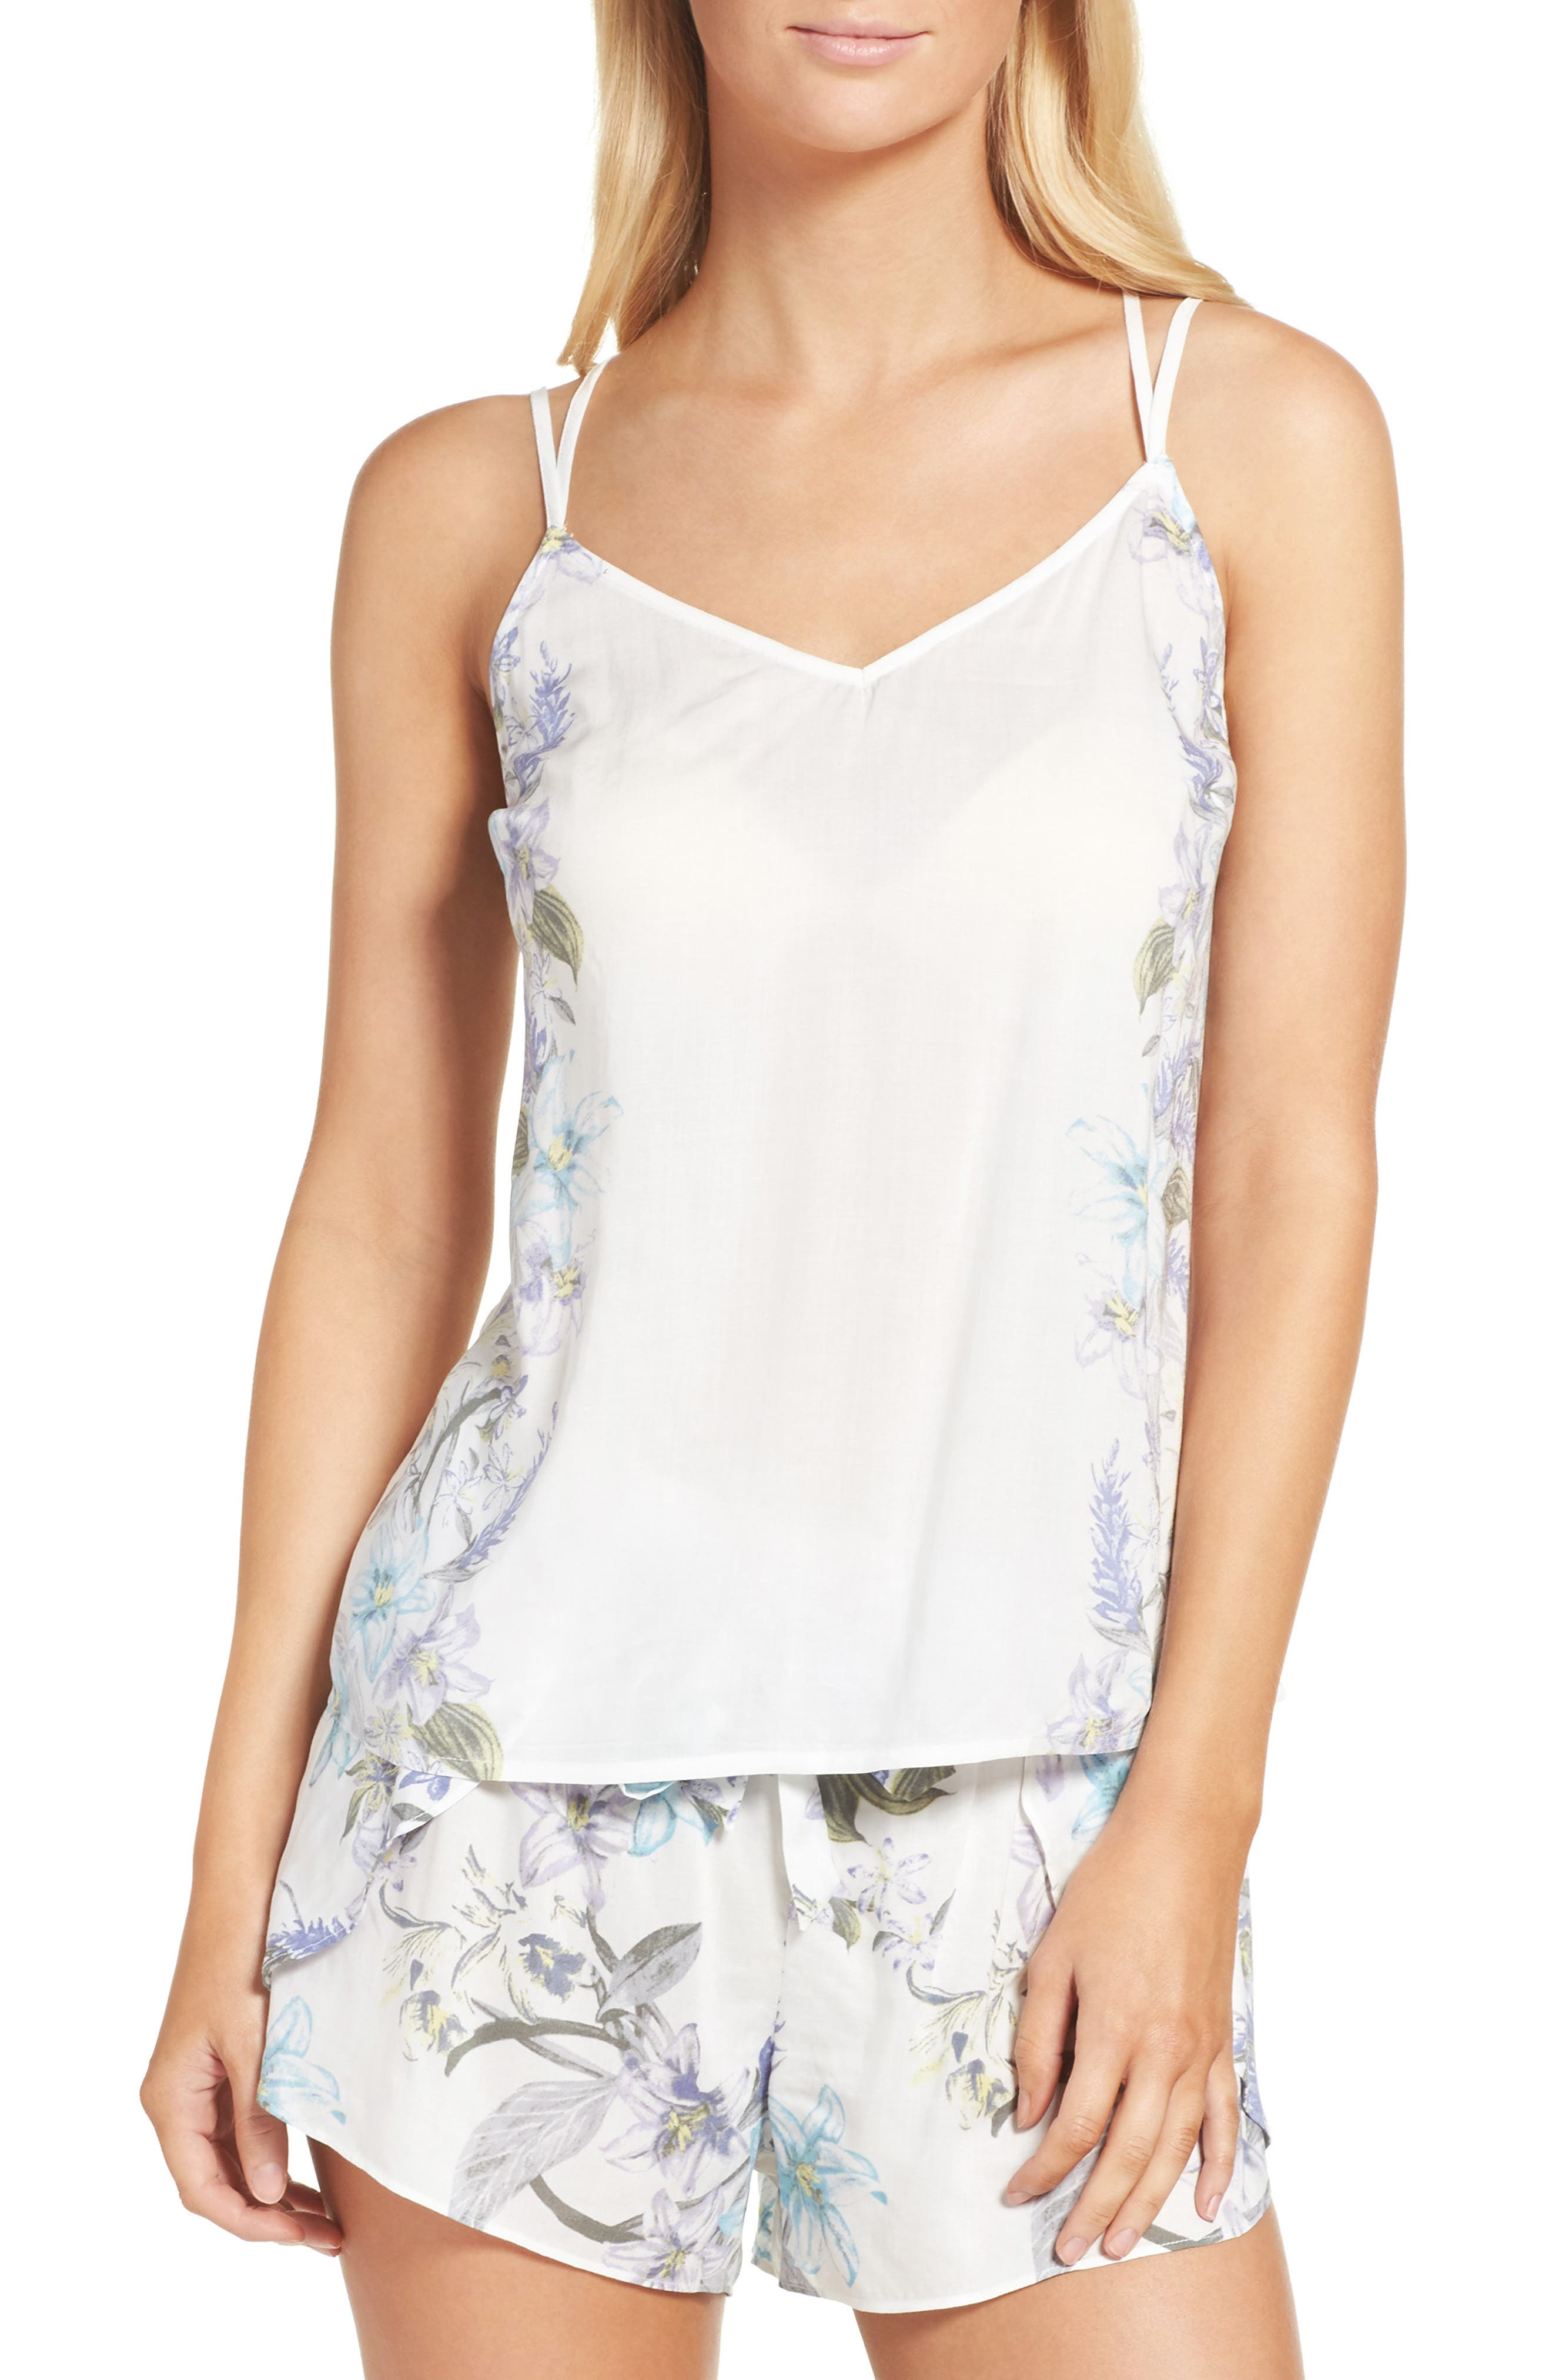 Nordstrom Lingerie Sweet Dreams Camisole